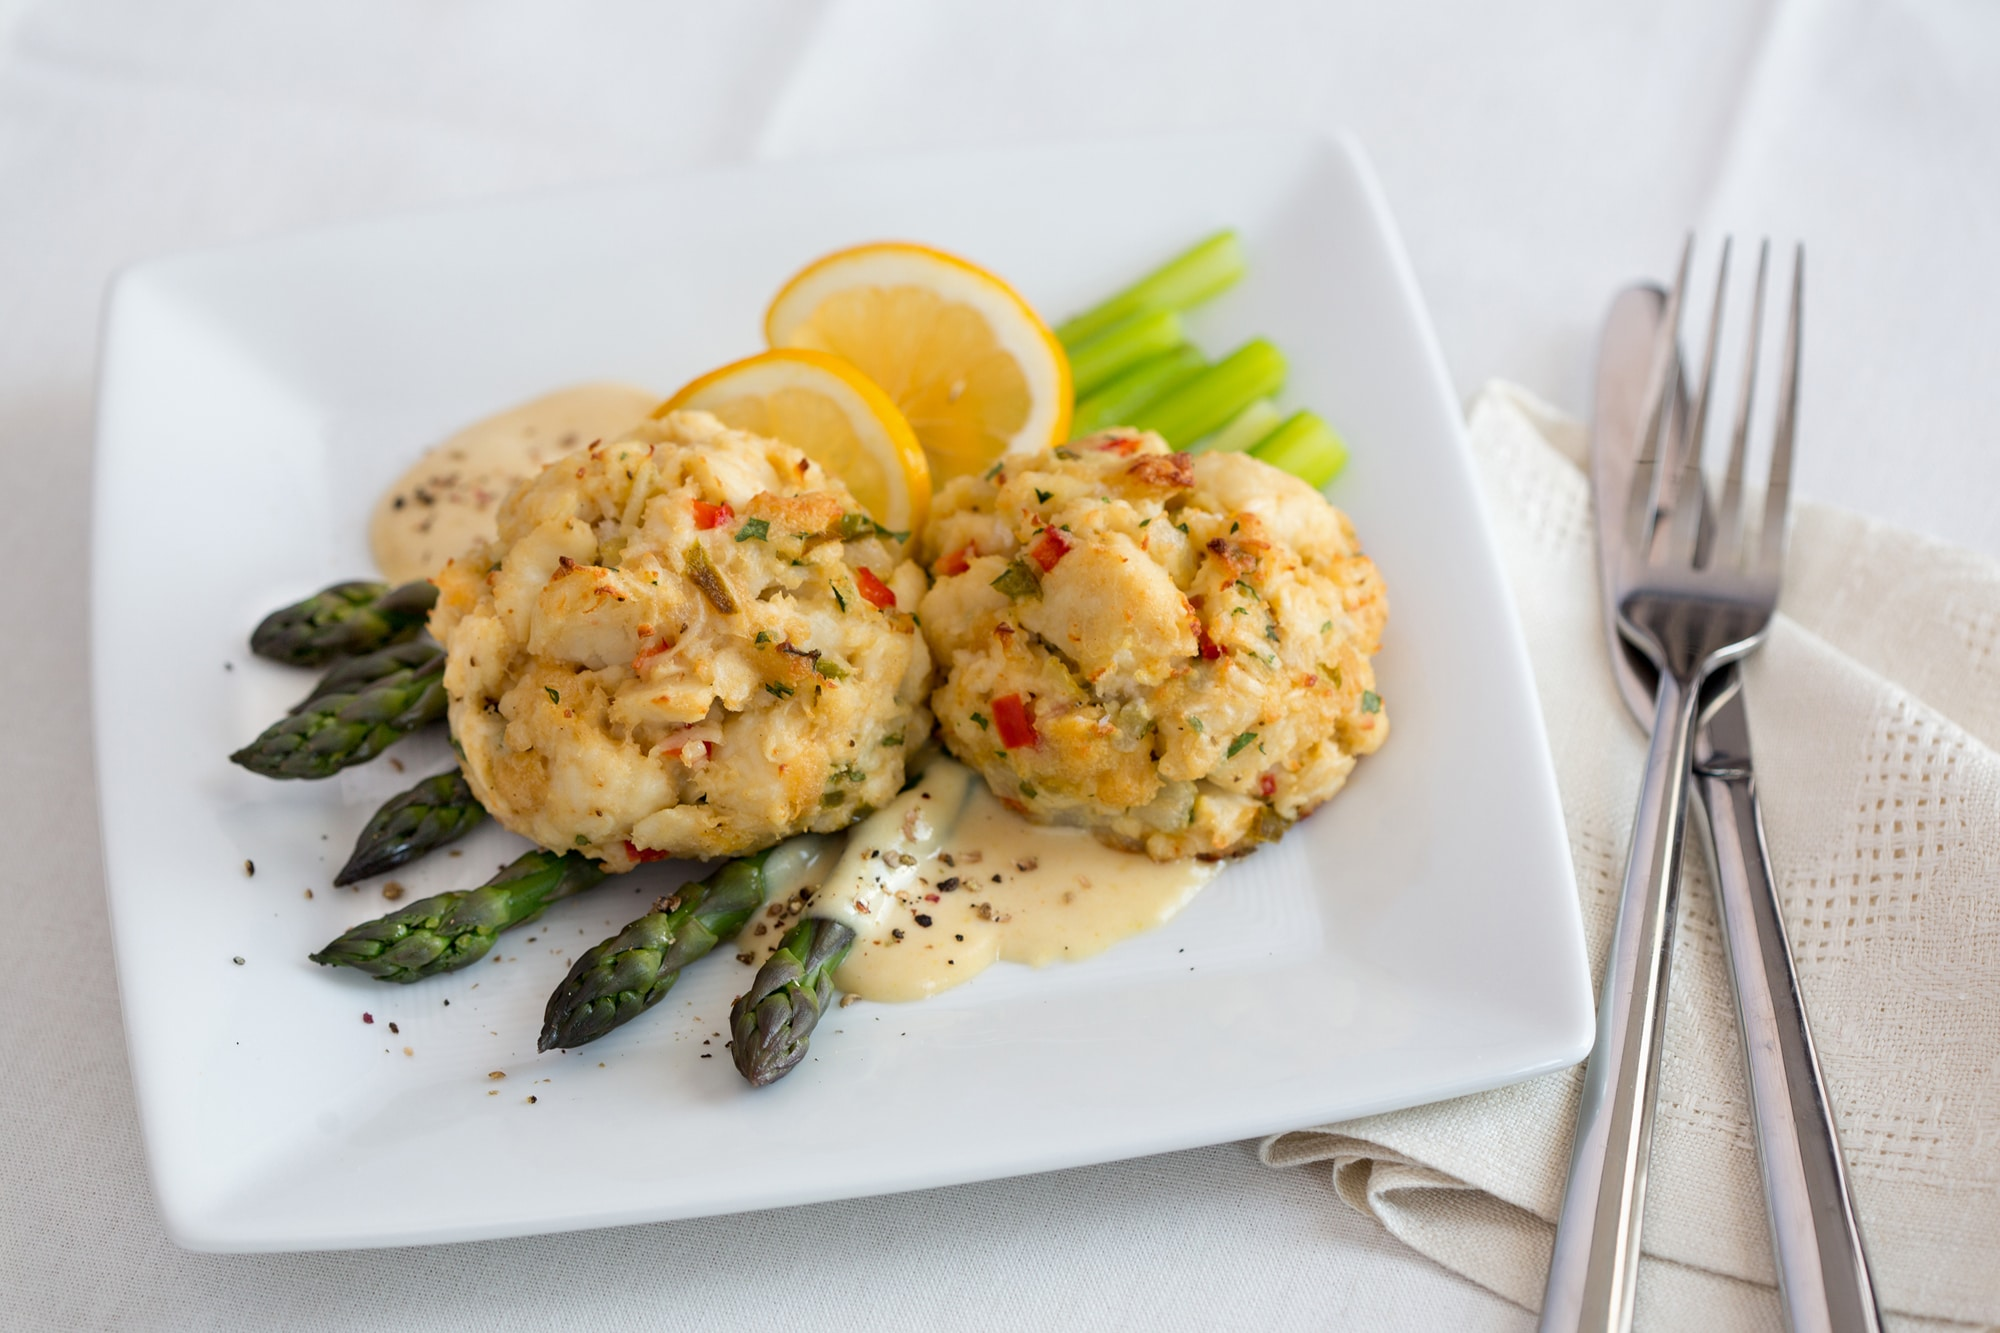 Cooking Crab Cake Cionvection Oven